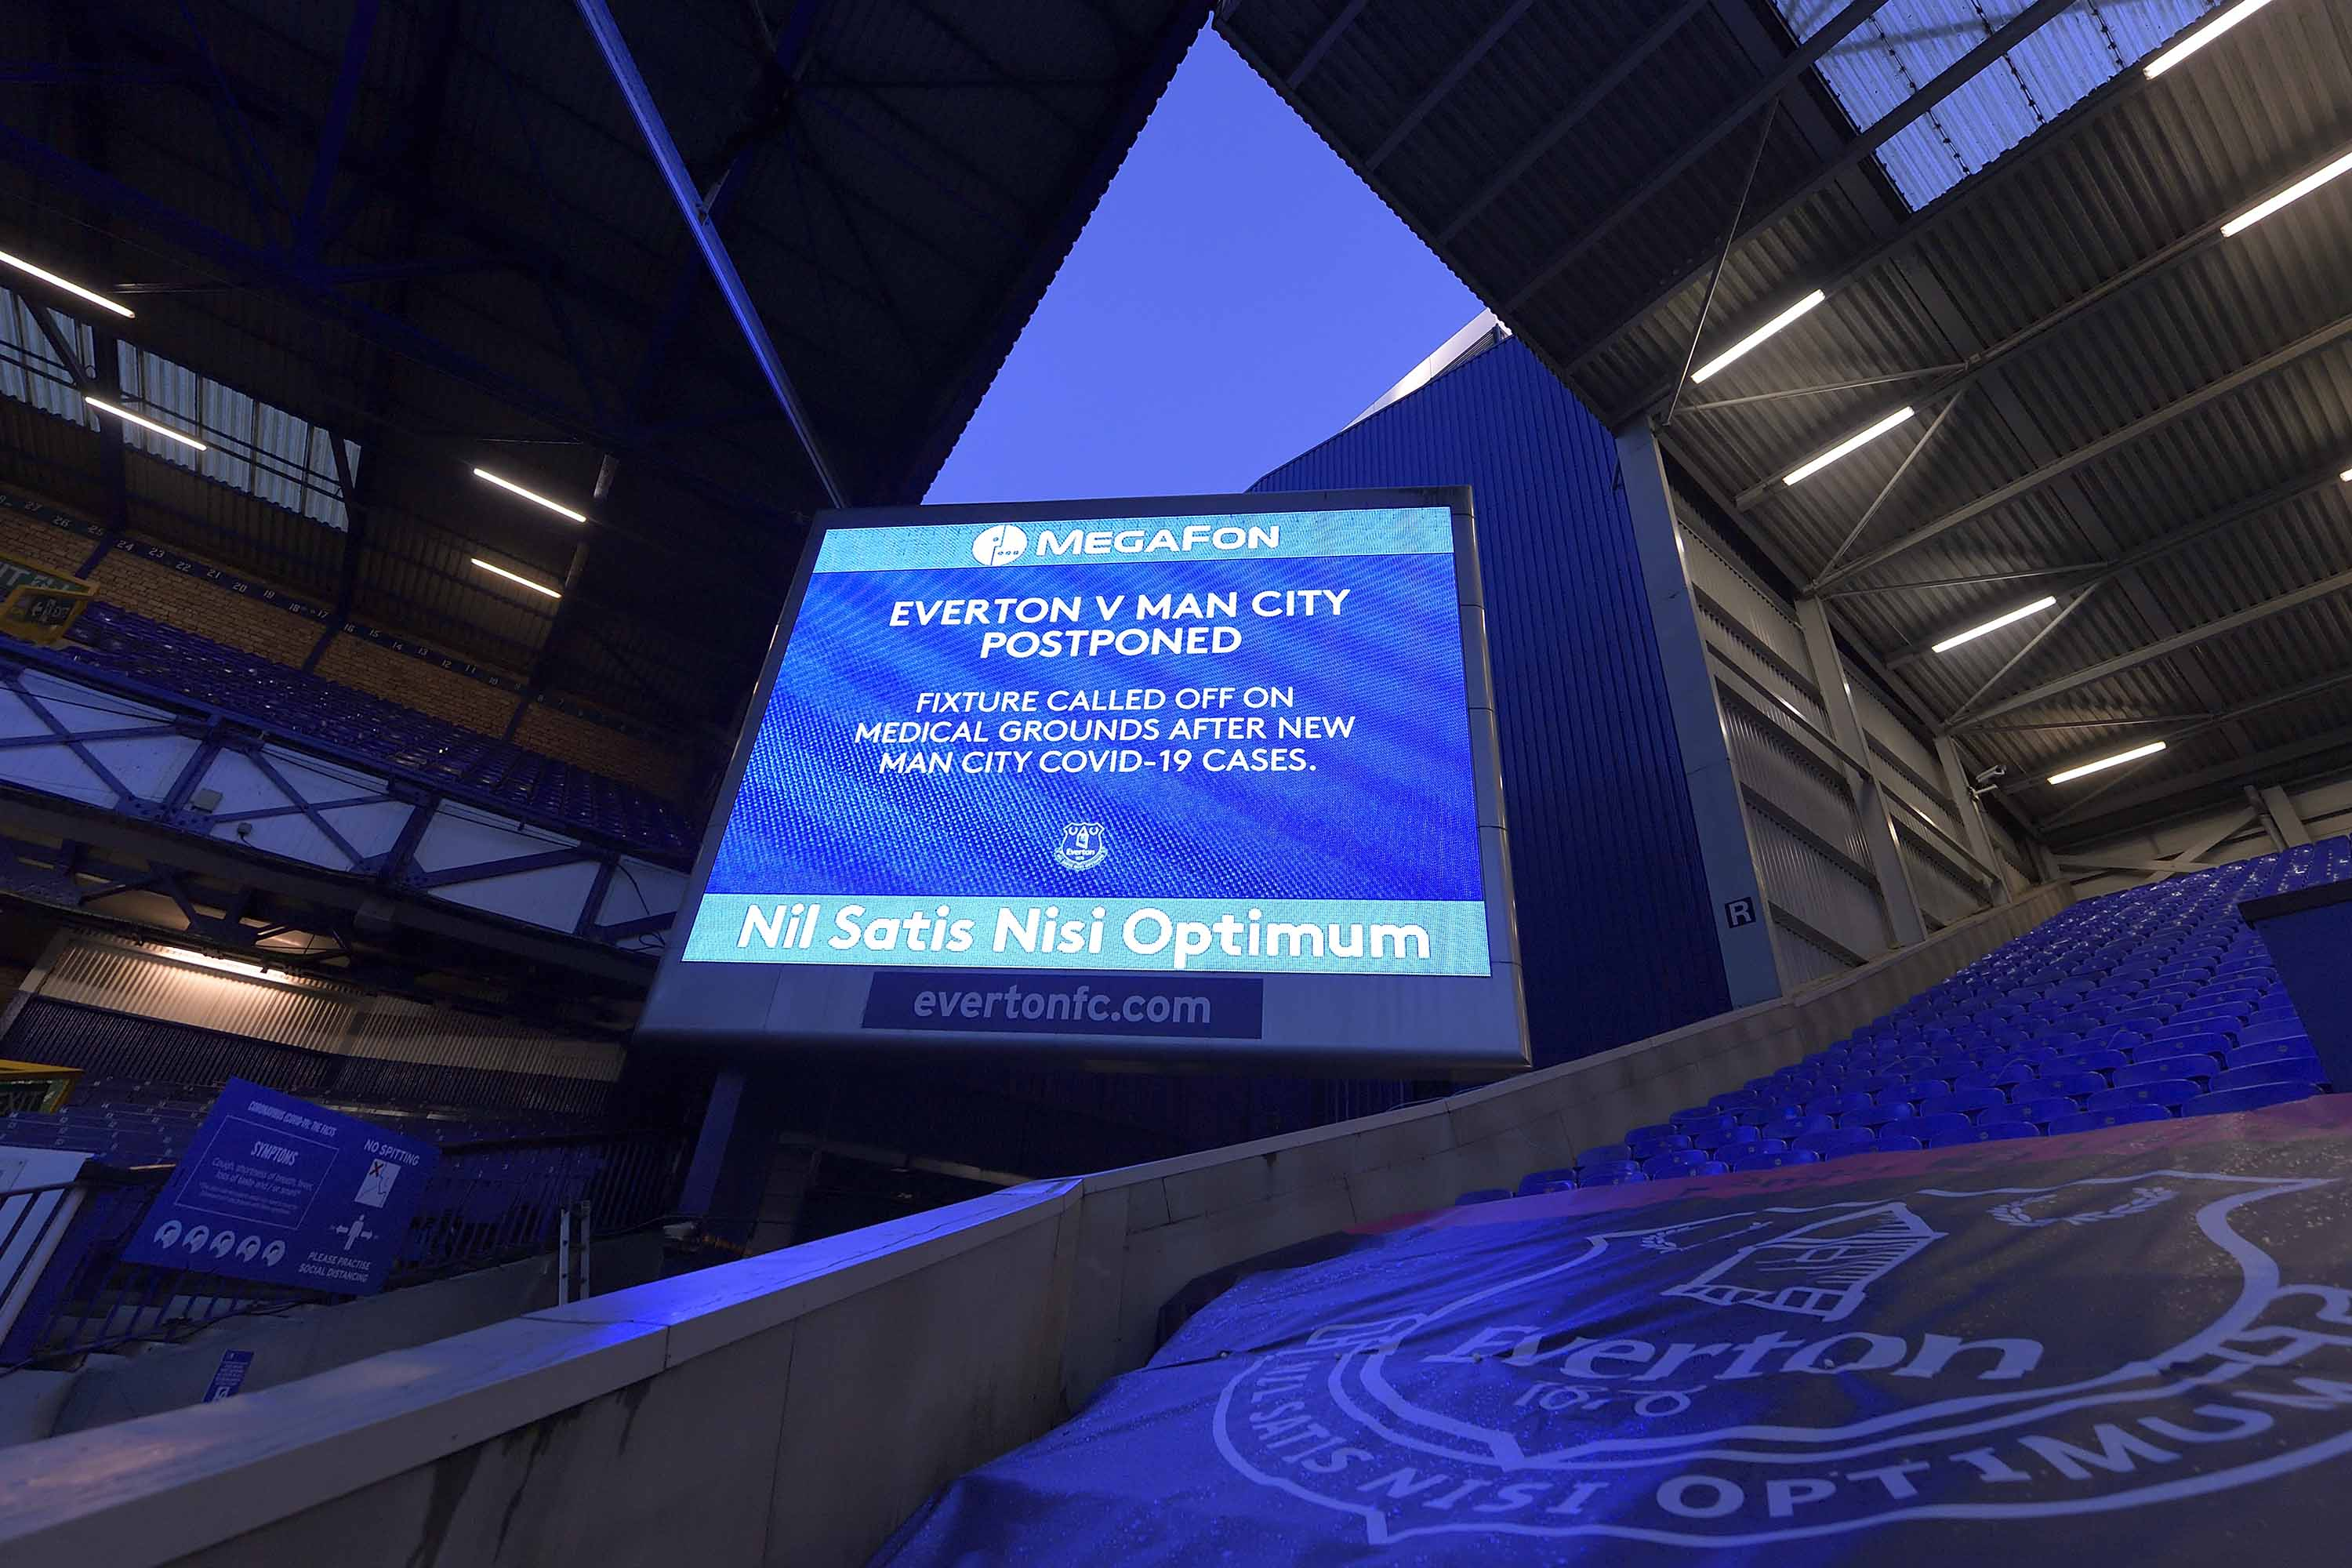 A notice announcing the postponement of the Premier League match between Everton and Manchester City in Liverpool, England, on December 28.